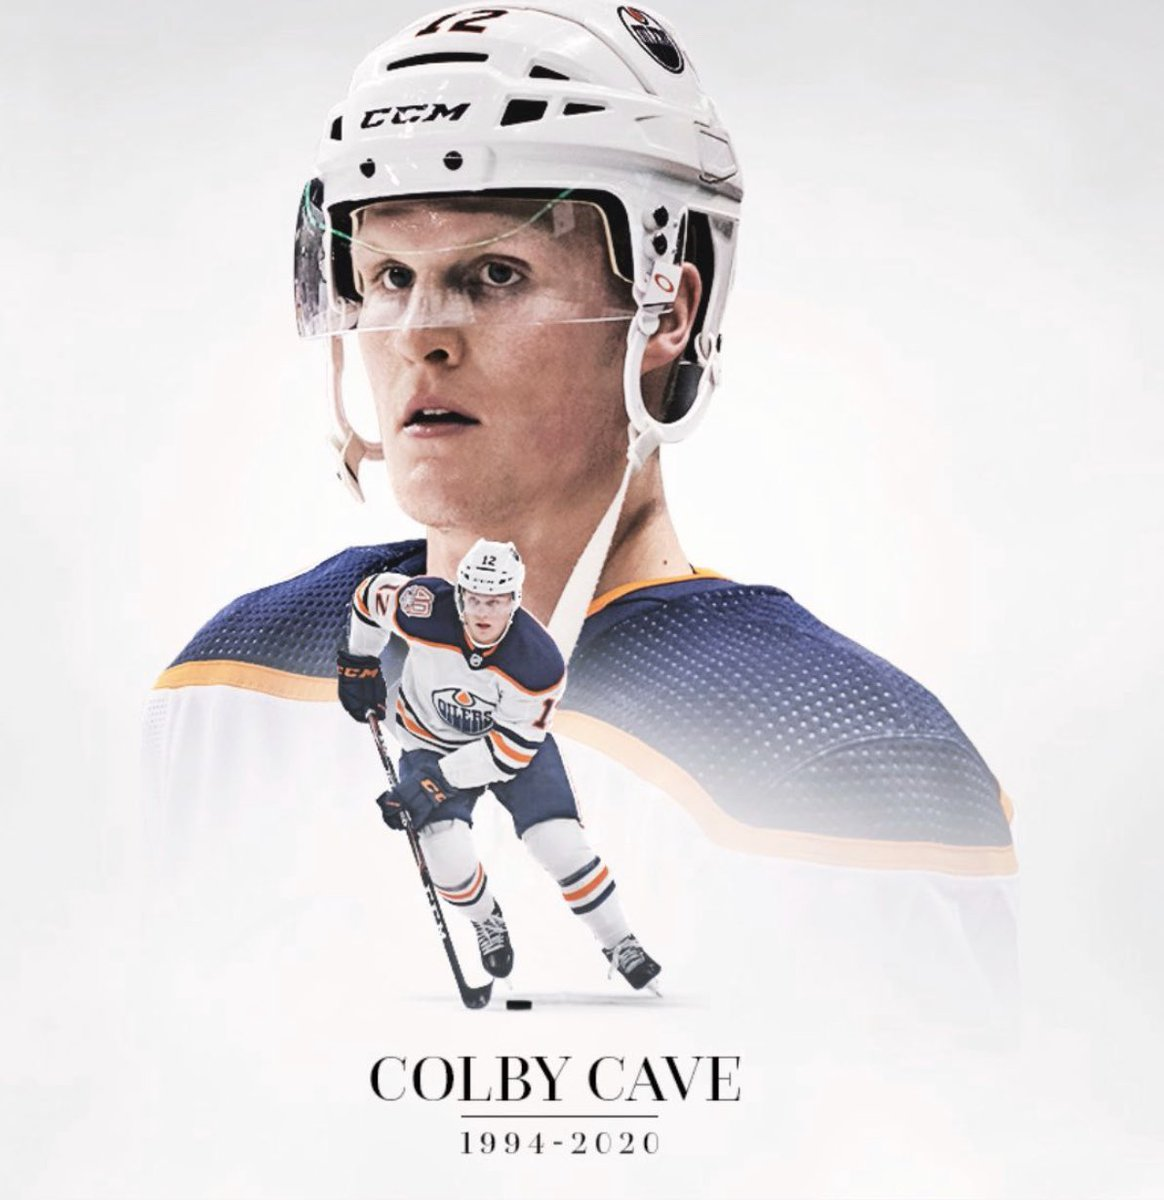 Rest in peace, Colby Cave🖤thoughts and prayers to his family and friends!